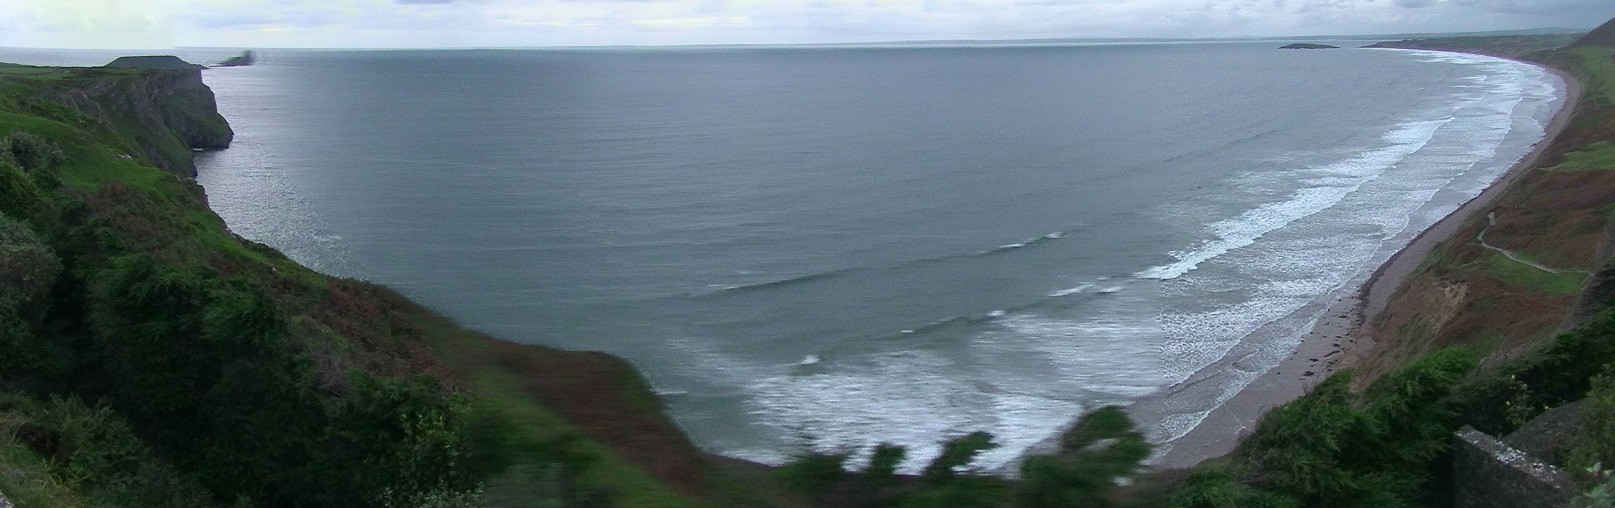 Latest webcam still for Llangennith / Rhossili